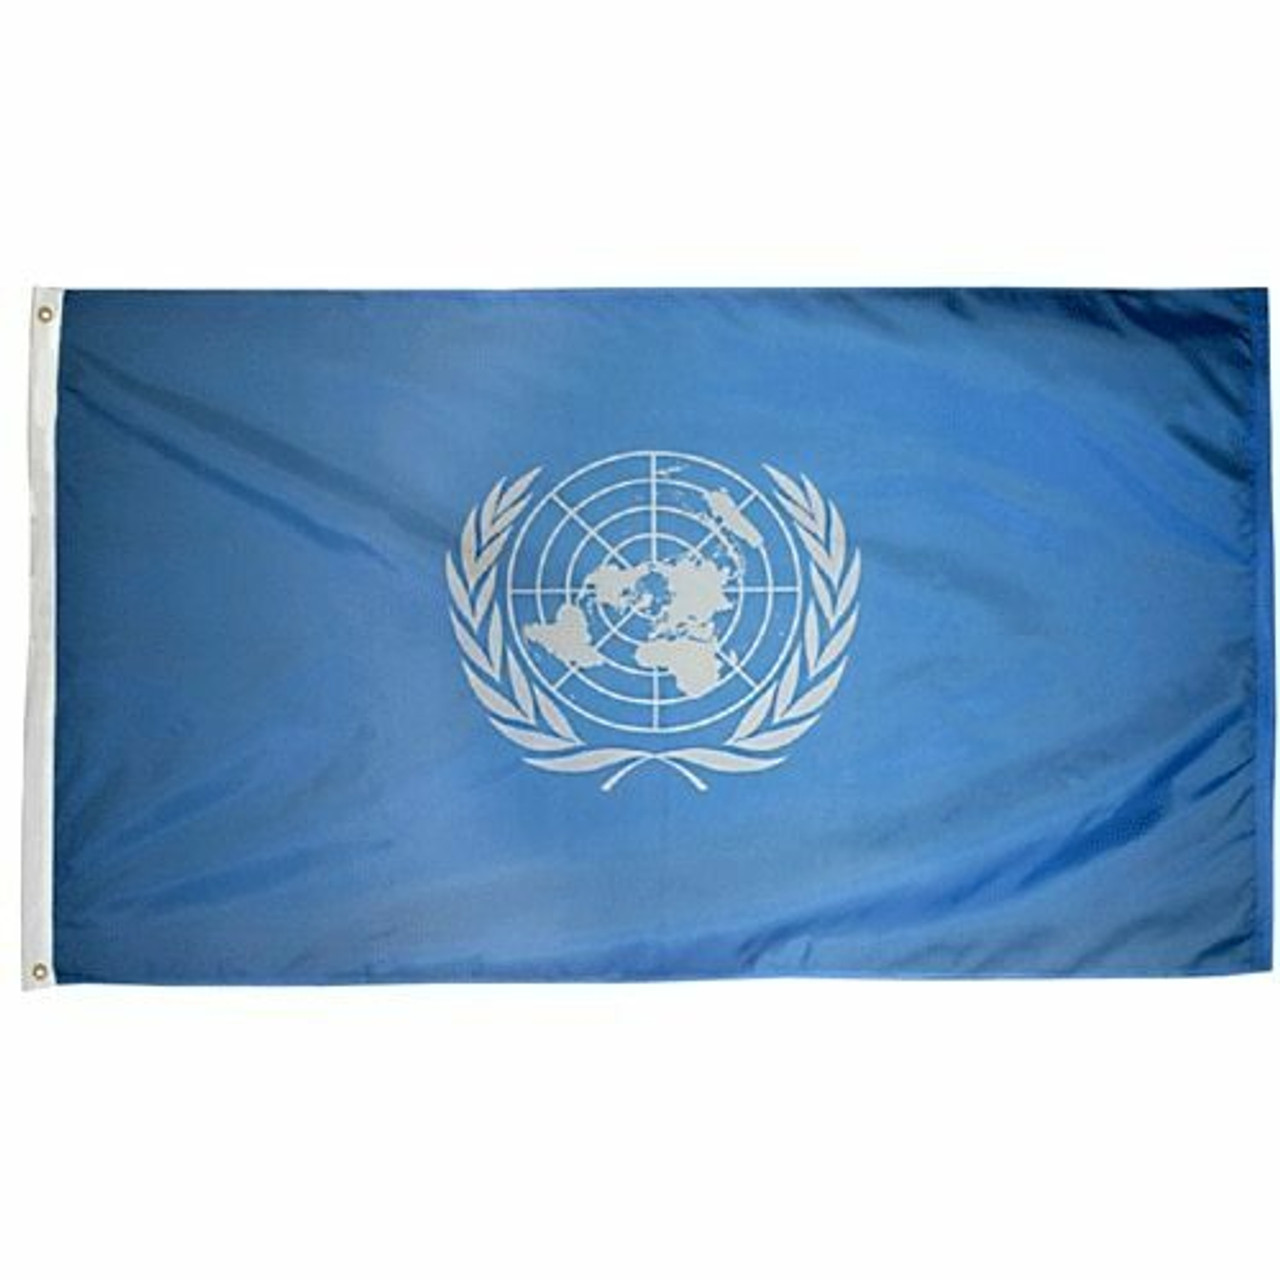 The UN Flag features a light blue background with a white global map in its center. The map is circular and is stylized to show a world view from the north pole, with each of the world's continents visible. On the left and right of the map are white olive branches, which meet in the middle below the map.